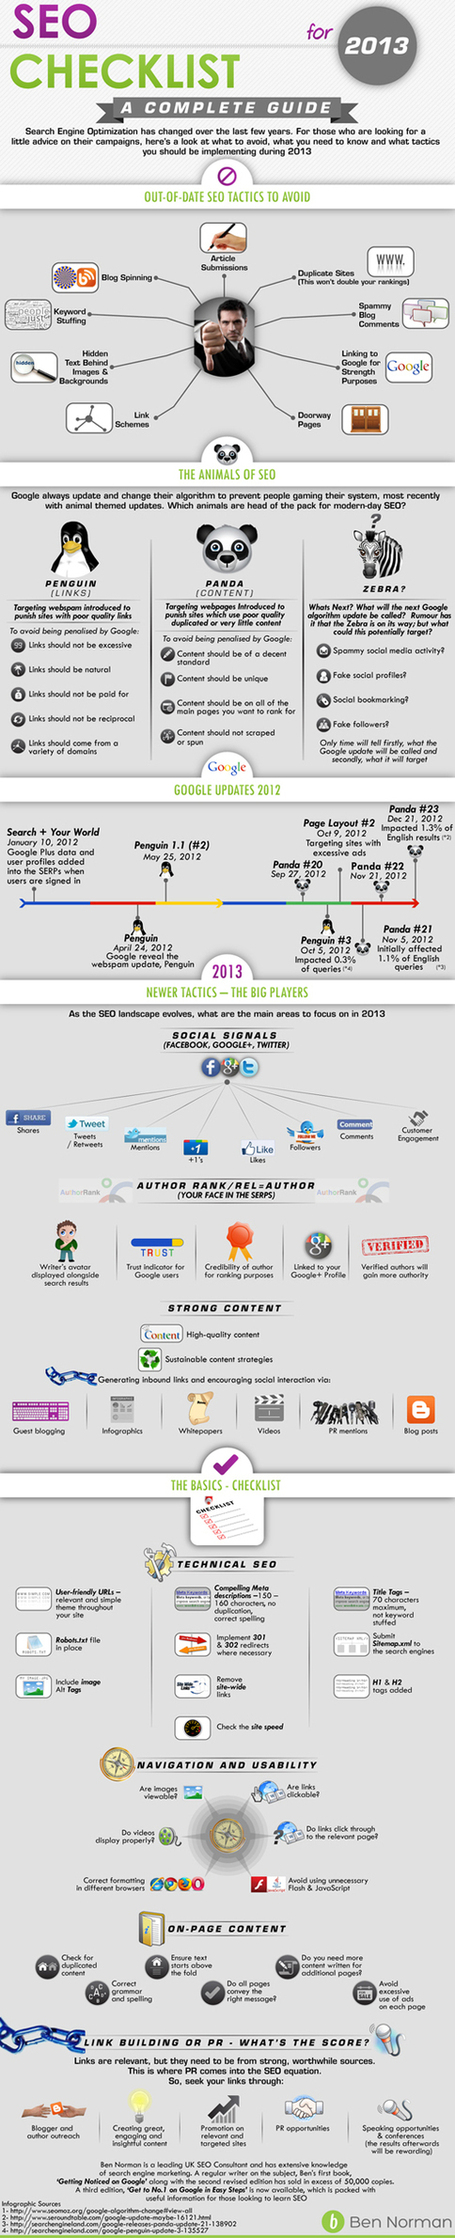 SEO Checklist for 2013 (Infographic) | Beyond Marketing | Scoop.it